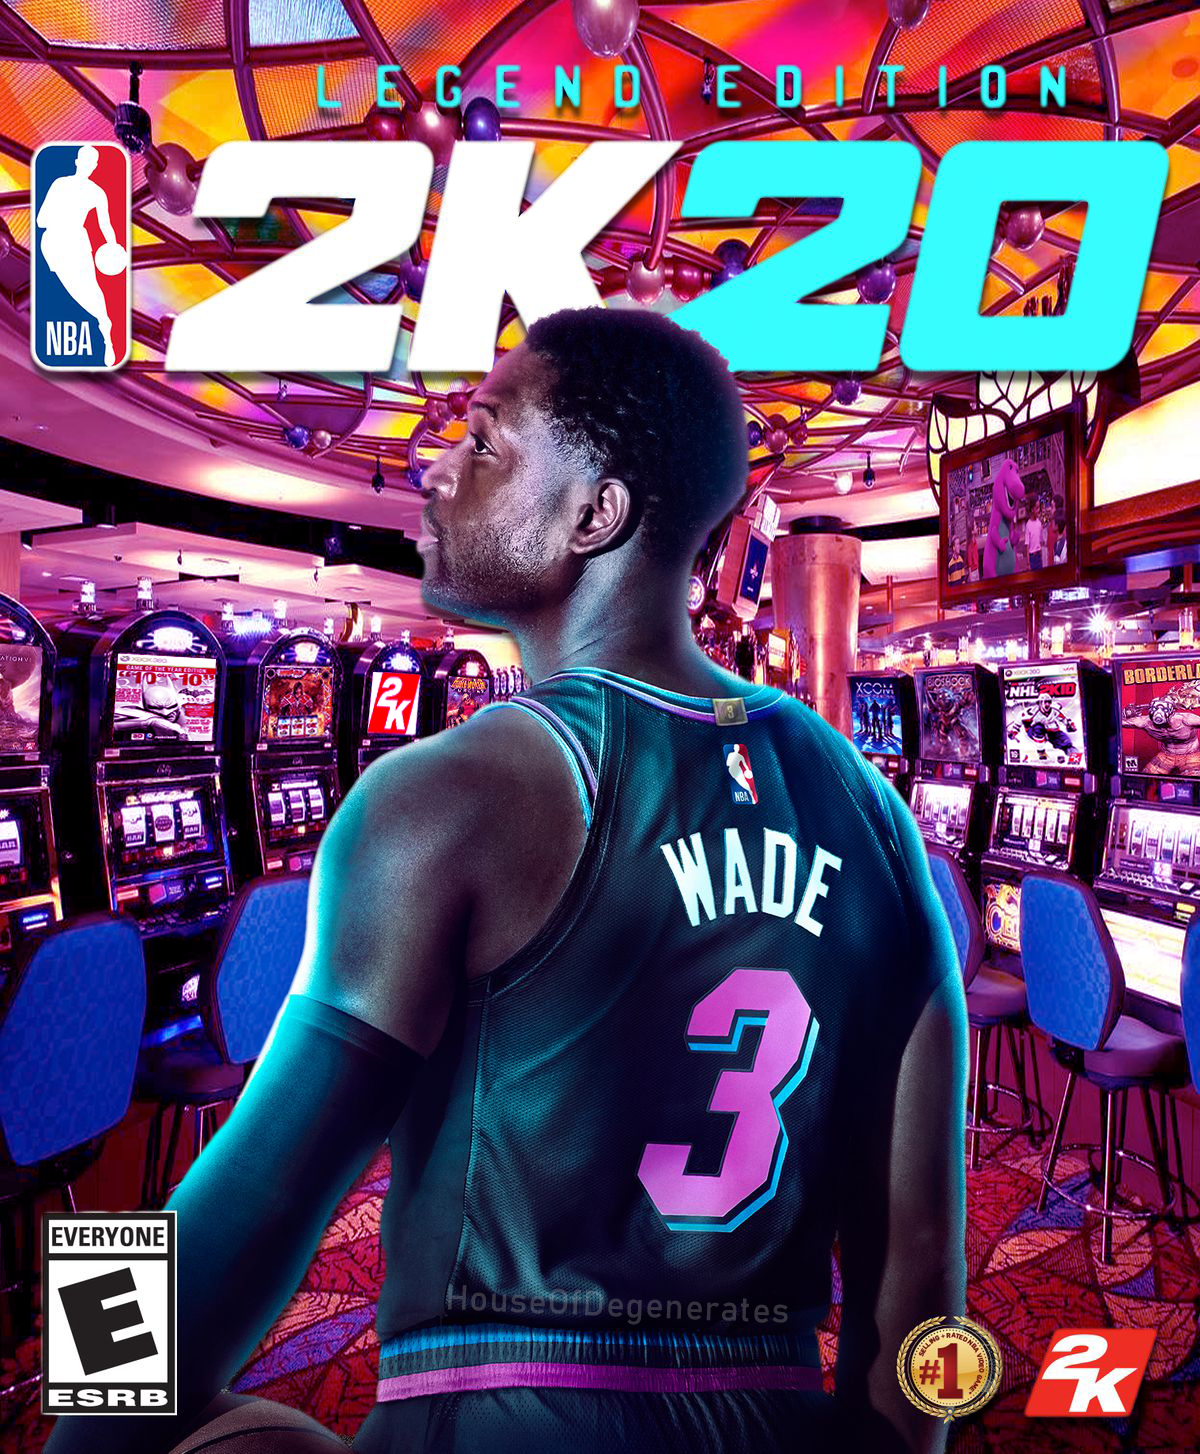 Pin By Aydensnyder On 2k Ios Games Game Cheats Games